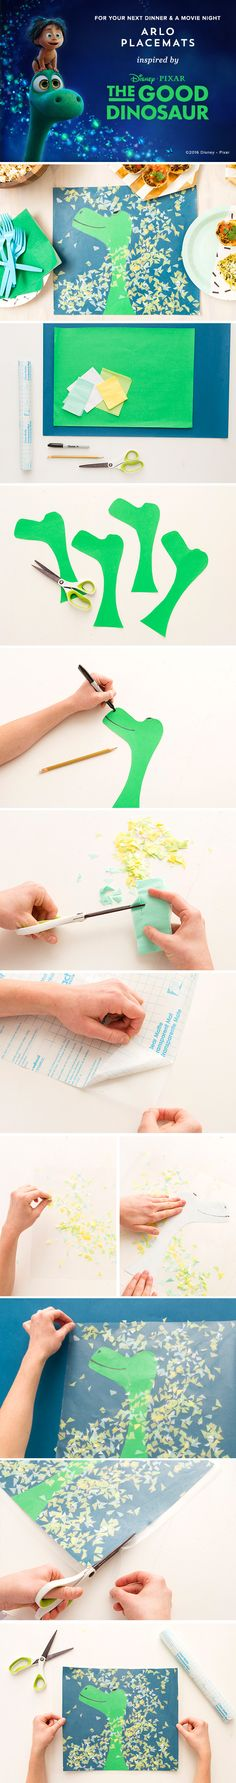 Create Arlo the Dinosaur Placemats Draw+cut Arlo's head. Dinosaur Party, Dinosaur Birthday, Movie Night Party, Kids Up, The Good Dinosaur, Paper Crafts For Kids, Camping Crafts, Disney Crafts, Activity Games